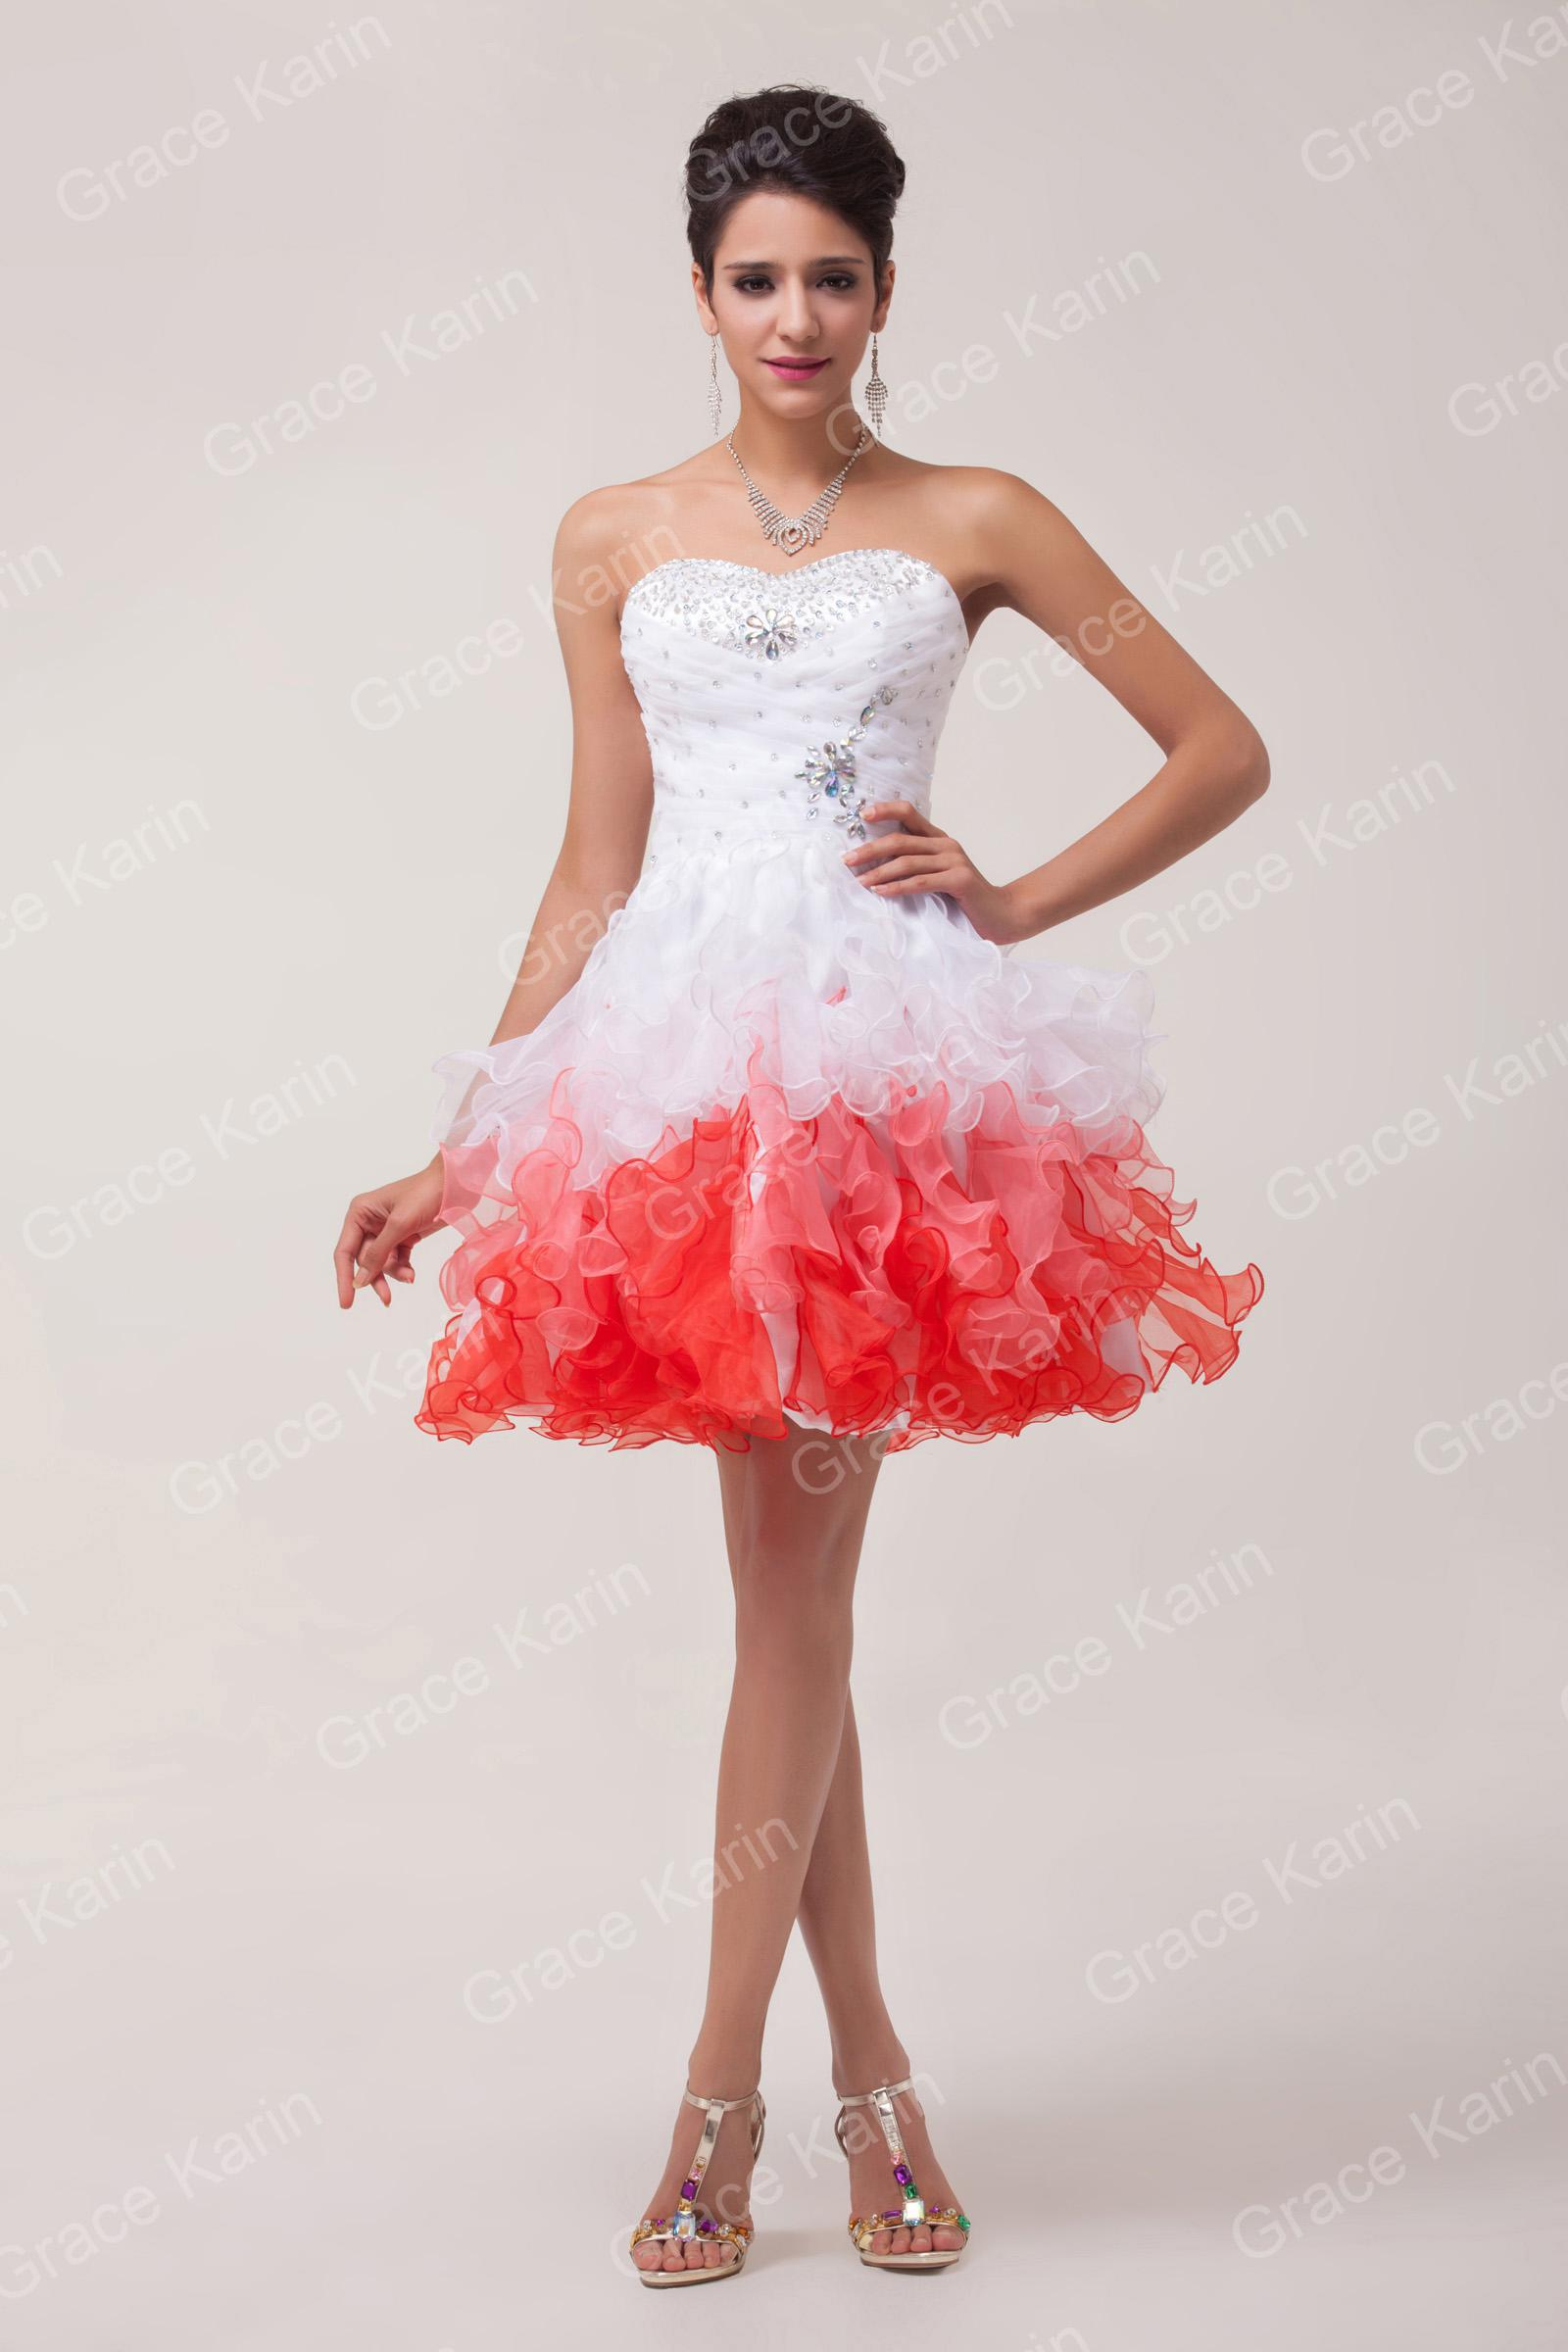 Tutu Dresses For Prom - Plus Size Prom Dresses